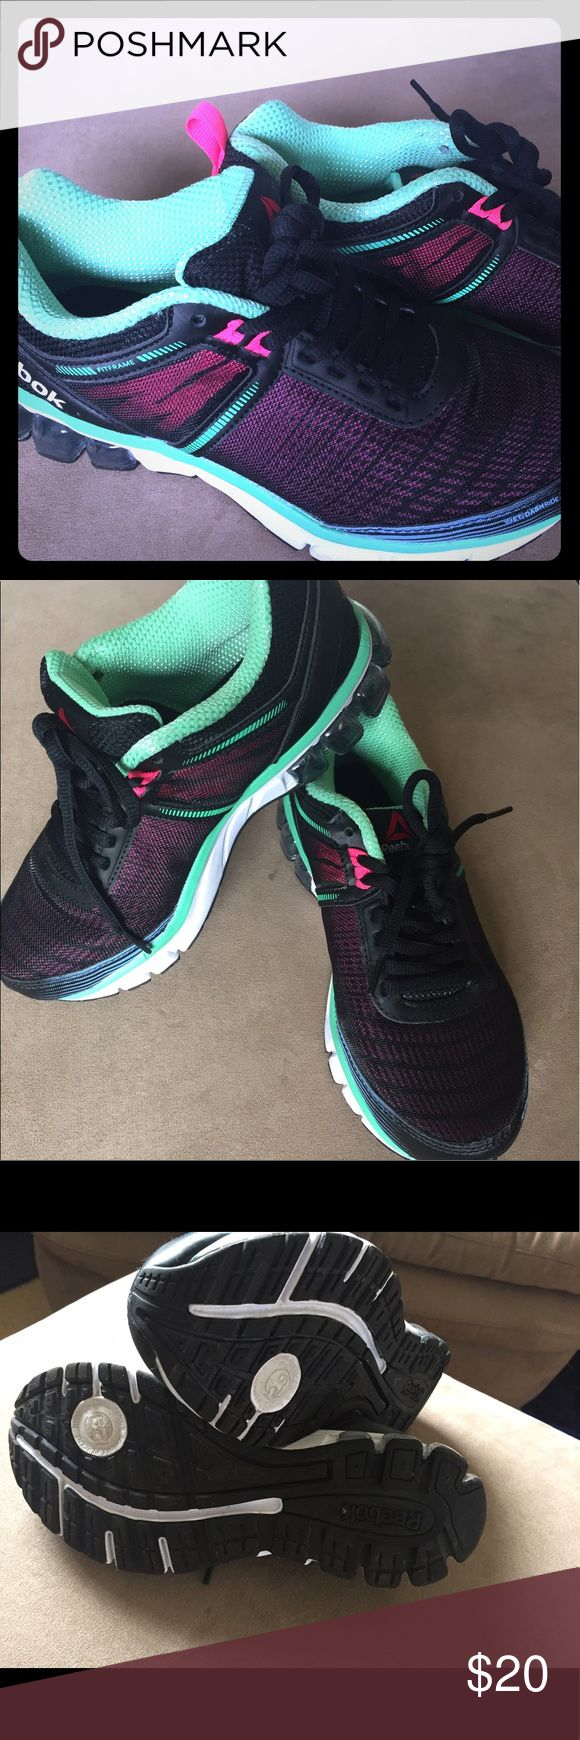 Size 5 Reebok jet dashride 2.0 running shoe Worn once these are size 5 but fit like a 5.5 comfortable, bright colors but not flashy! Purchased brand new and only selling because I have too many pairs and these are a little big. No flaws Reebok Shoes Athletic Shoes